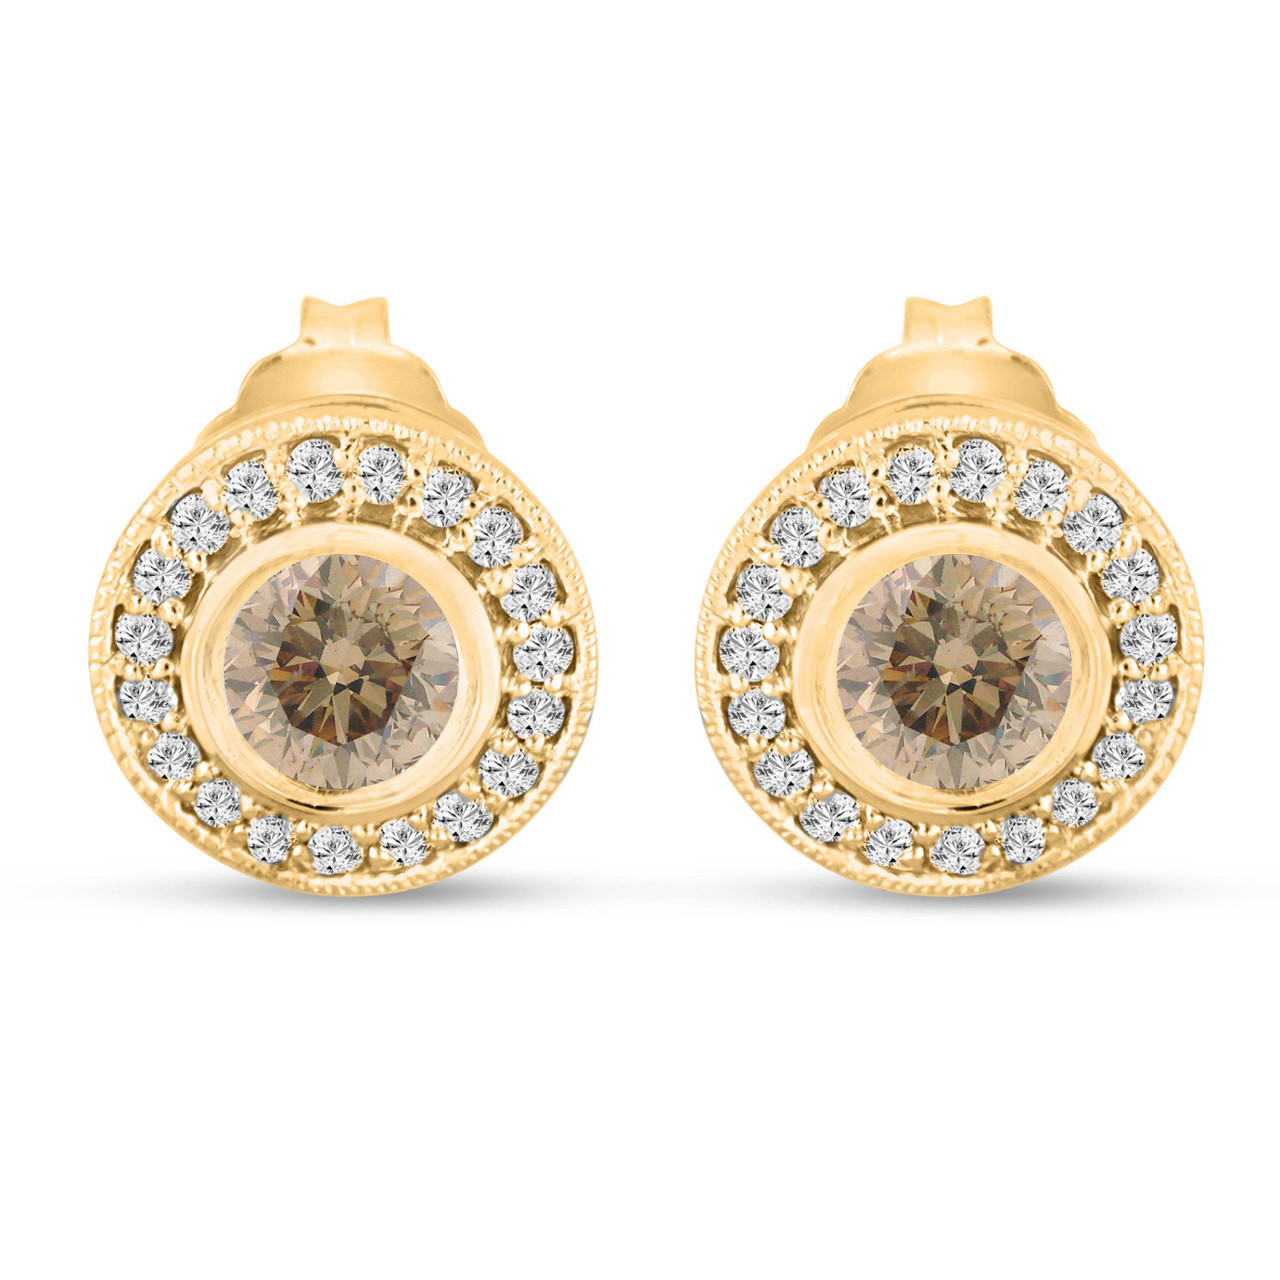 rosette black diamonds sheffield cd yellow gold earrings yg jewelry champagne diamond bs products stud in anna tiny